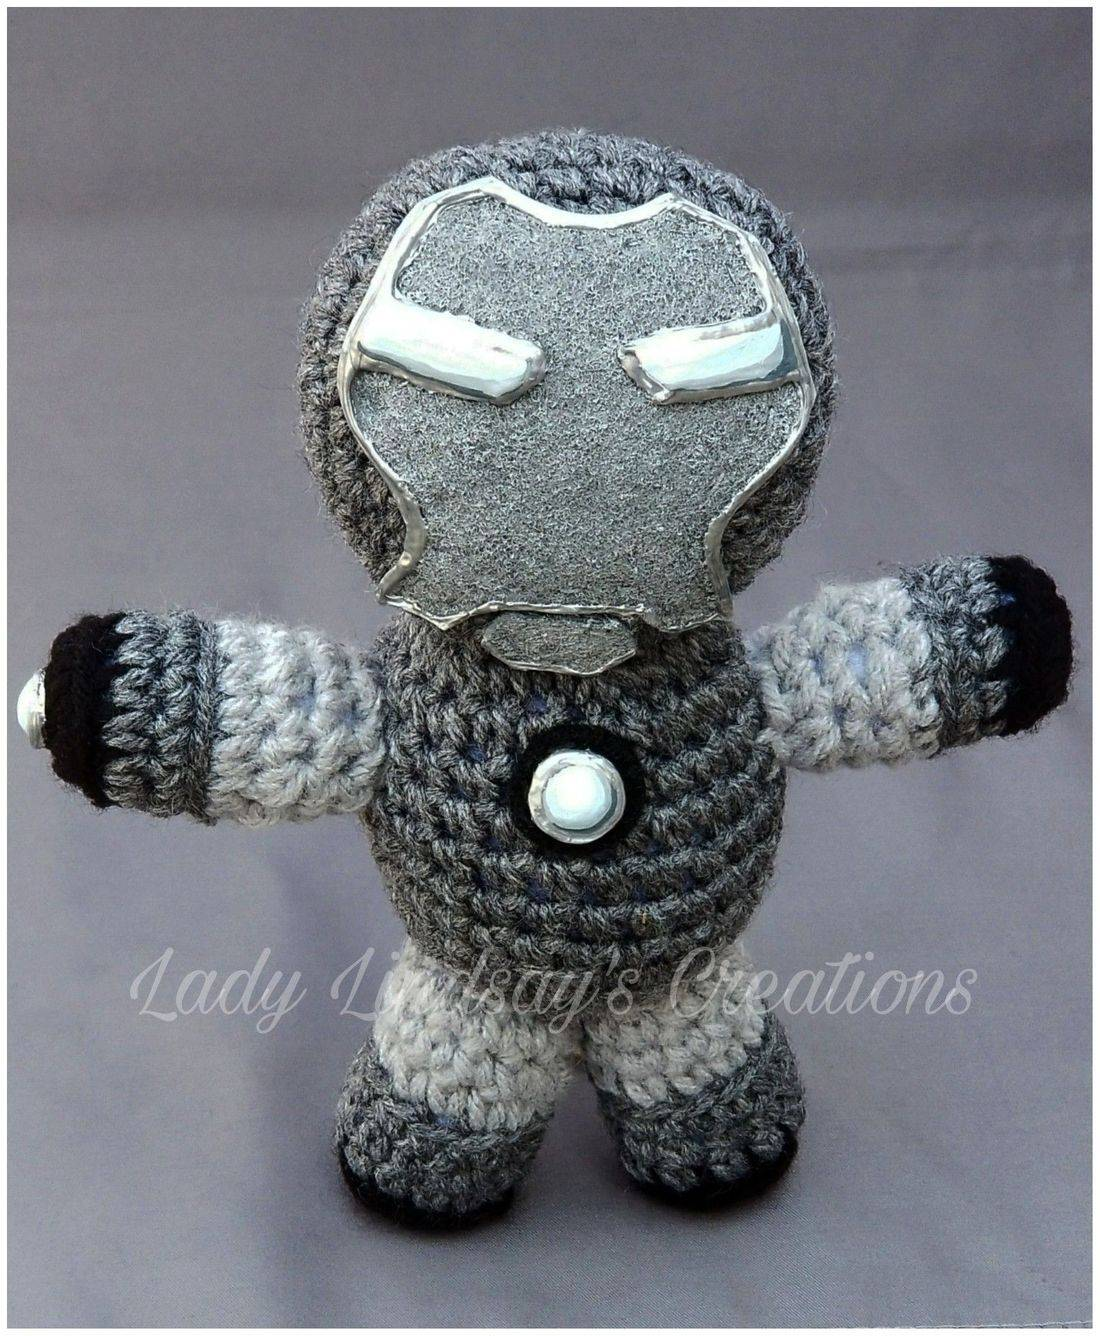 Infinity War, Avengers: Infinity Wars, War Machine, Rhodey, Iron Man, Tony Stark, Stark Enterprises, Amigurumi, plush, crochet, handmade, shop small, Etsy, nerd, geek, otaku, anime, manga, comicbook, superhero, avengers